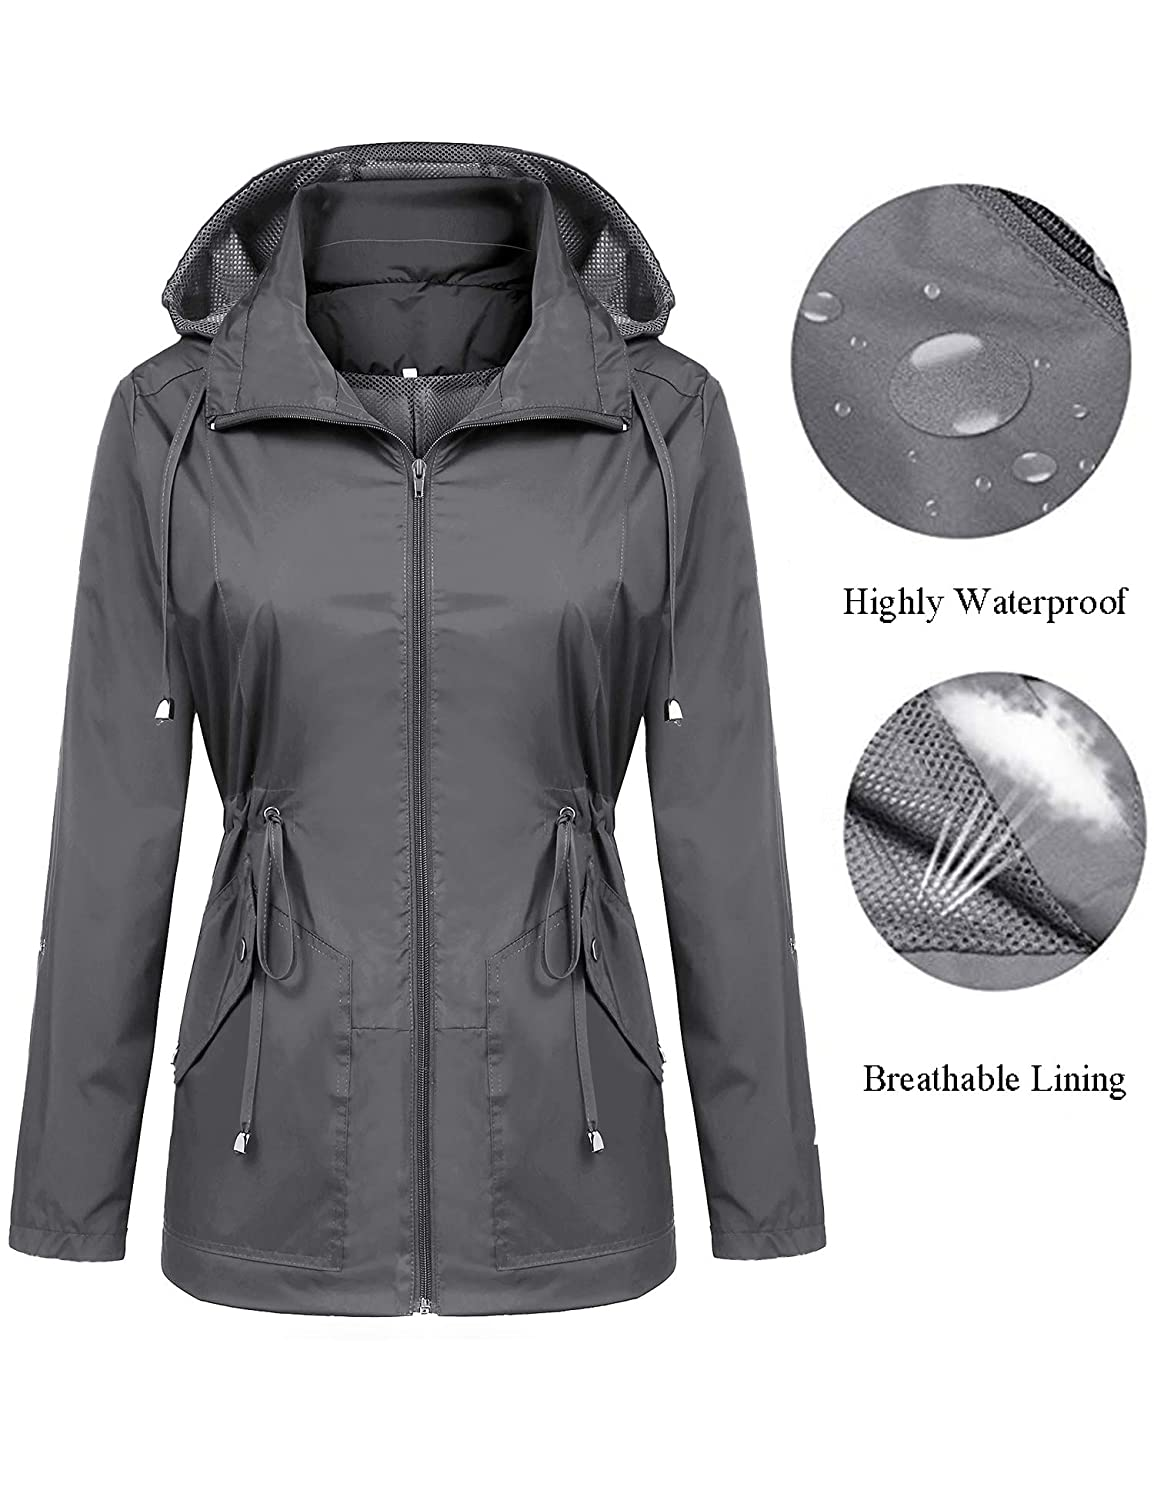 Doreyi Women Rain Jackets Waterproof Lightweight Raincoat with Hood Breathable Lining for Active Hiking Travel